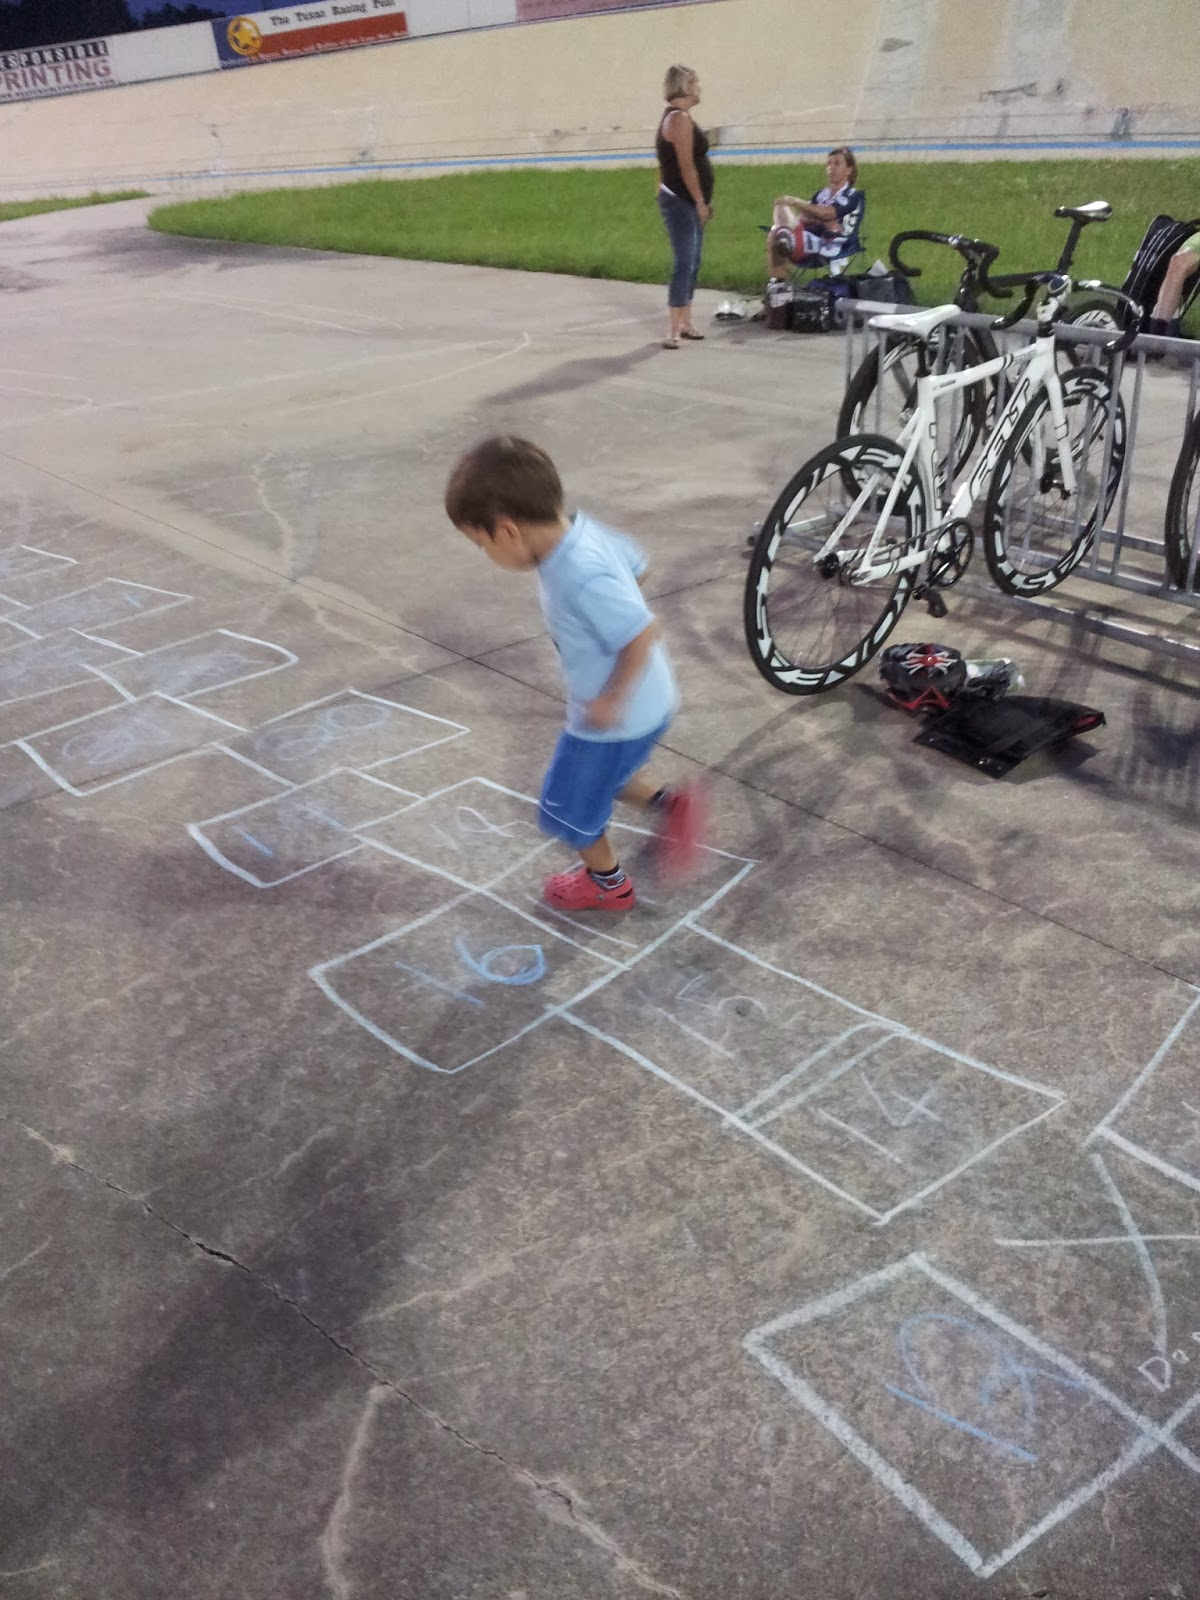 Kids playing hop scotch